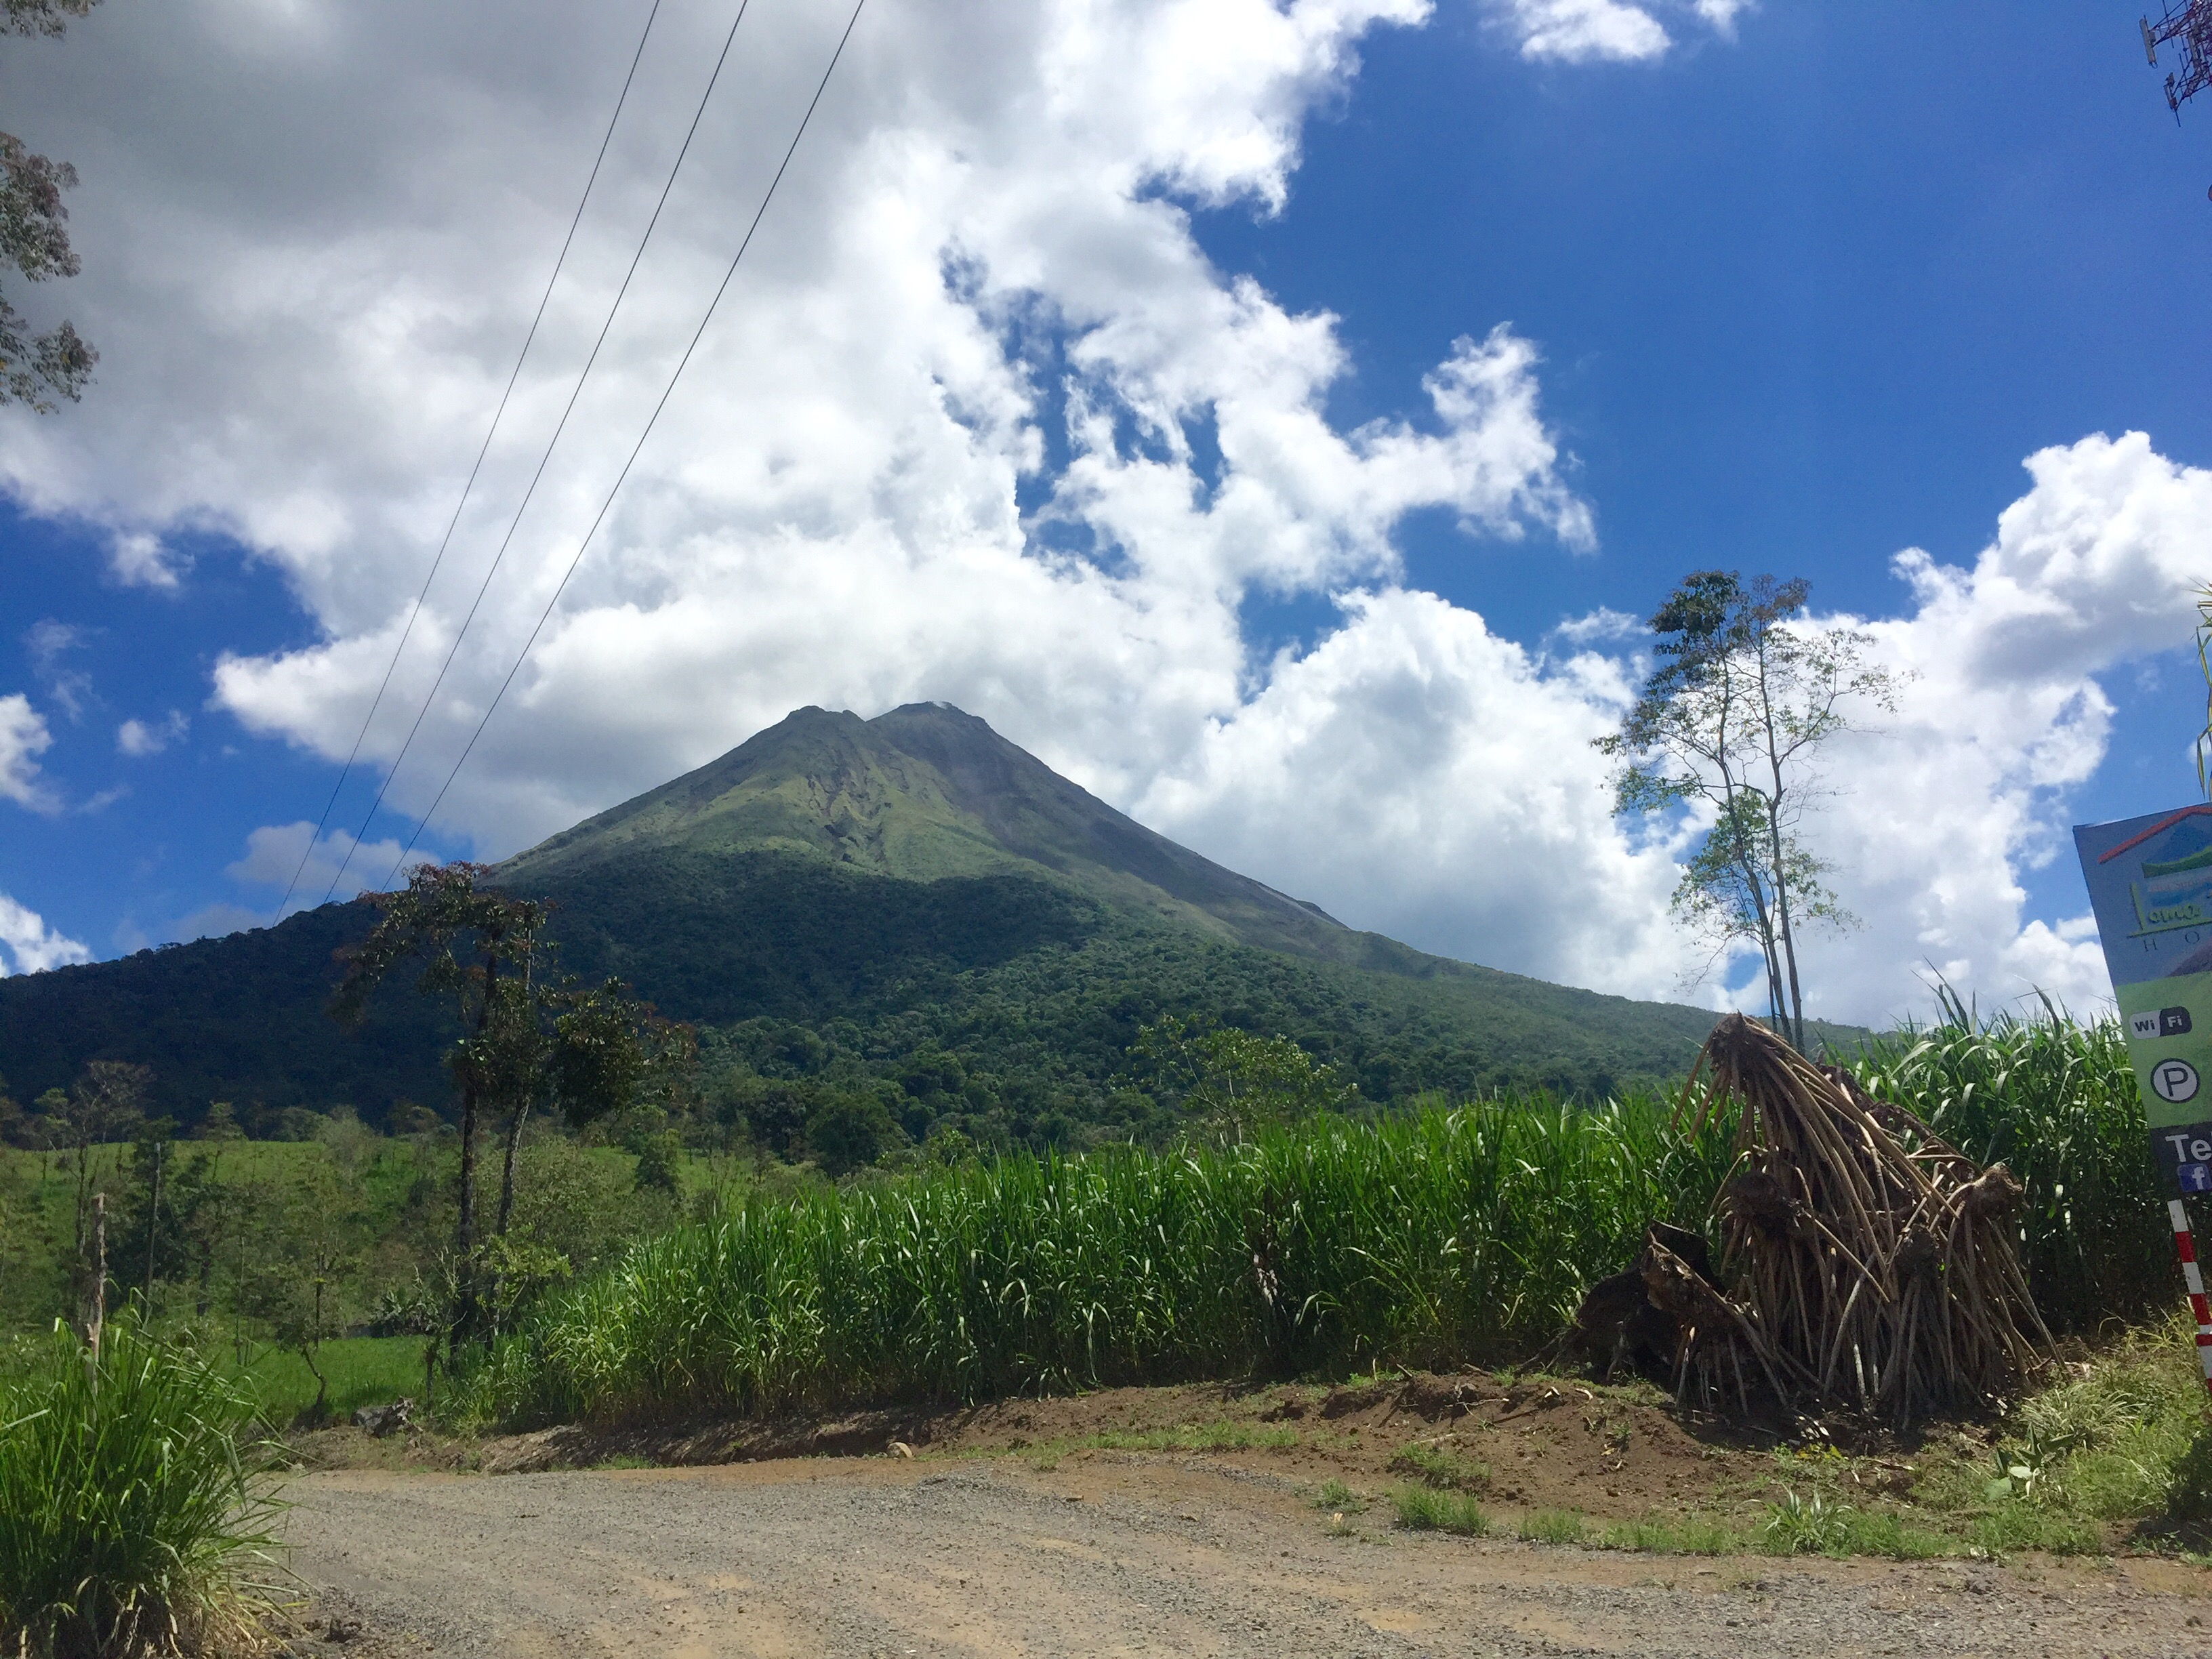 Arenal Volcano, seen from the town of La Fortuna.